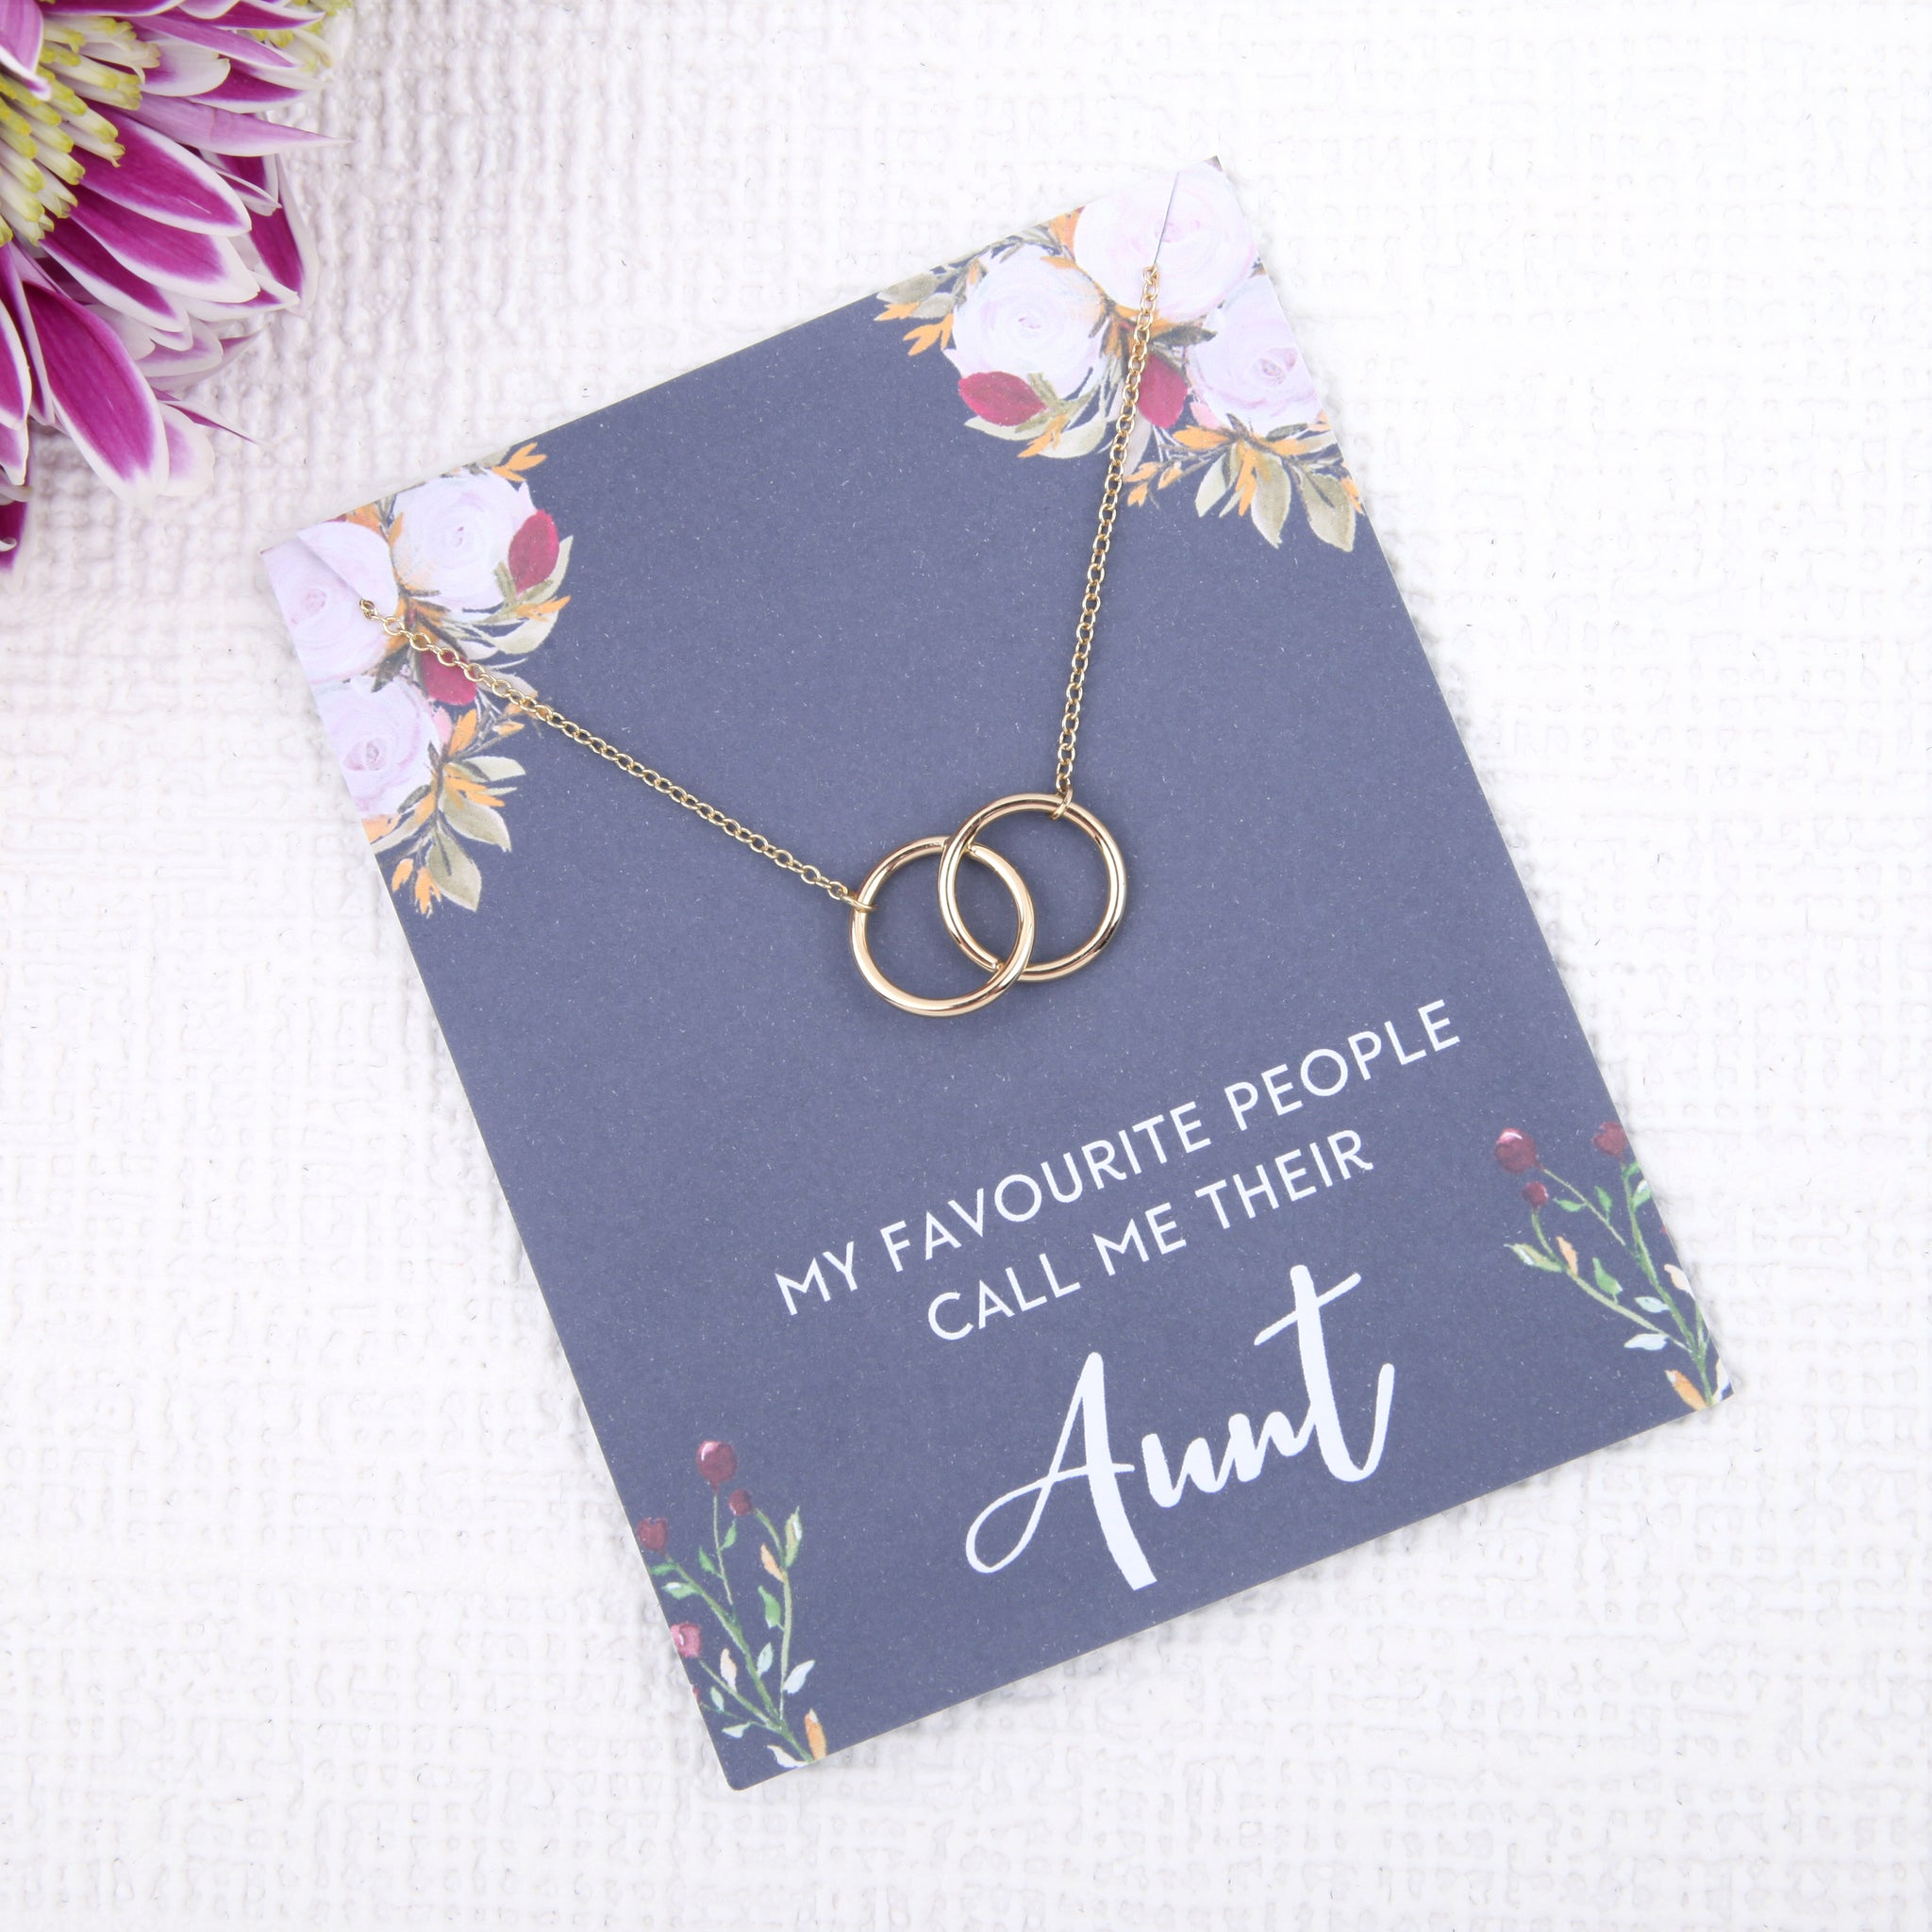 Personalised unusual auntie gifts uk -aunt gift from niece dainty minimalist jewellery circles message card necklace - Statement Made Jewellery